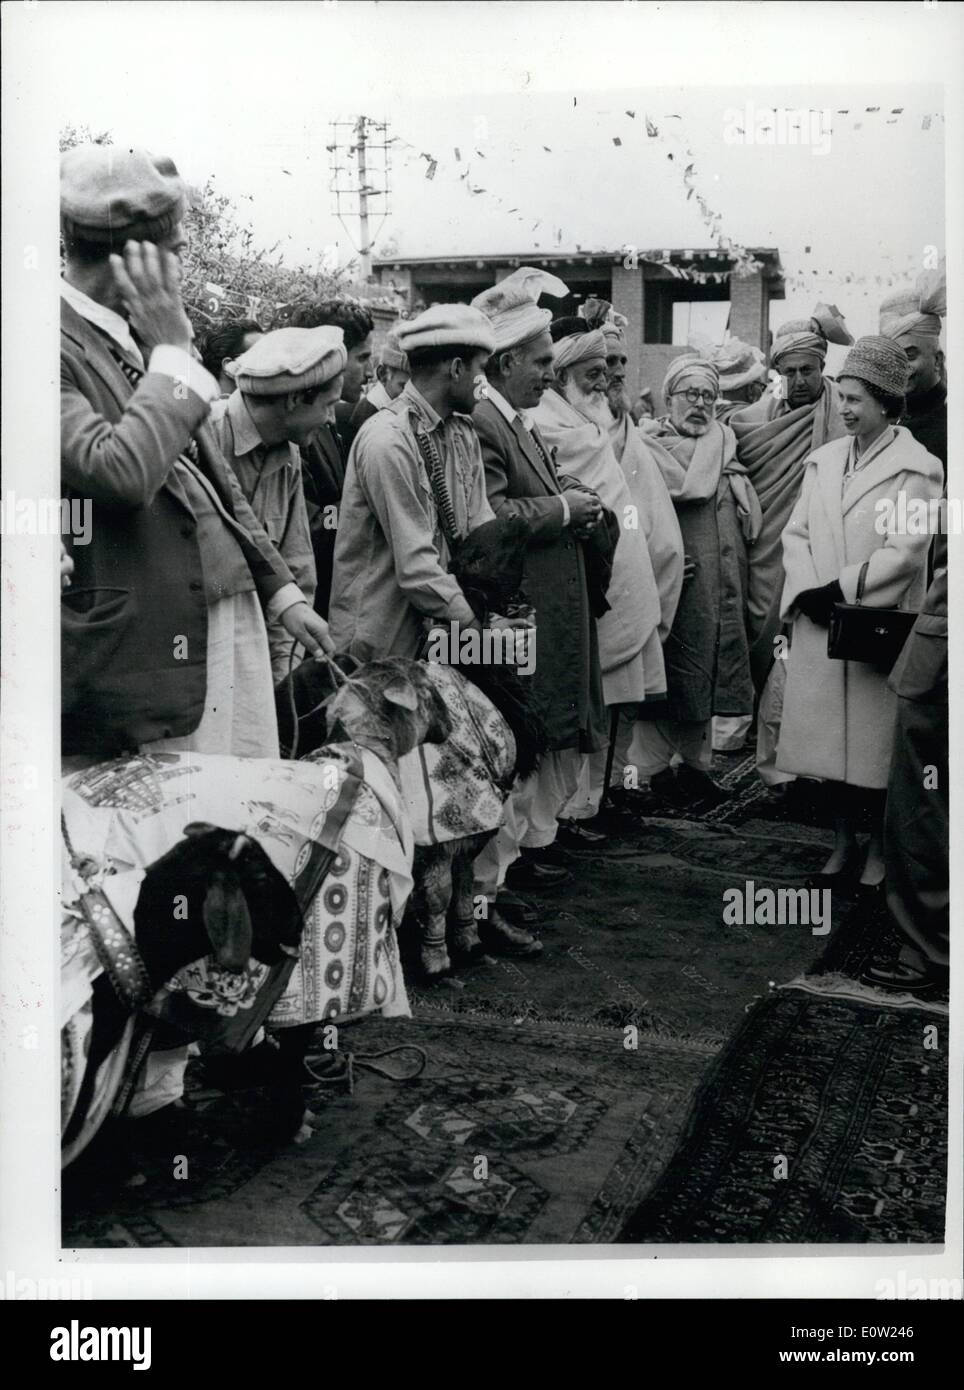 Feb. 02, 1961 - The Royal Tour of Pakistan Queen Looks at Sacrificial sheep. H.M. Queen Elizabeth II looks at four sheep dressed in Gaily printed scarves which were presented to her as the traditional frontier gift at Jamrud in the Tribal area bordering on the Pakistan - Afghanistan frontier. The Queen symbolically accepted the beats by patting each of them on the head. Then they were returned to he ''Maliks'' (Local Chiefs) to be slaughtered and distributed among the people at a Feast 1/2. Seen during the stage visit to Pakistan. - Stock Image